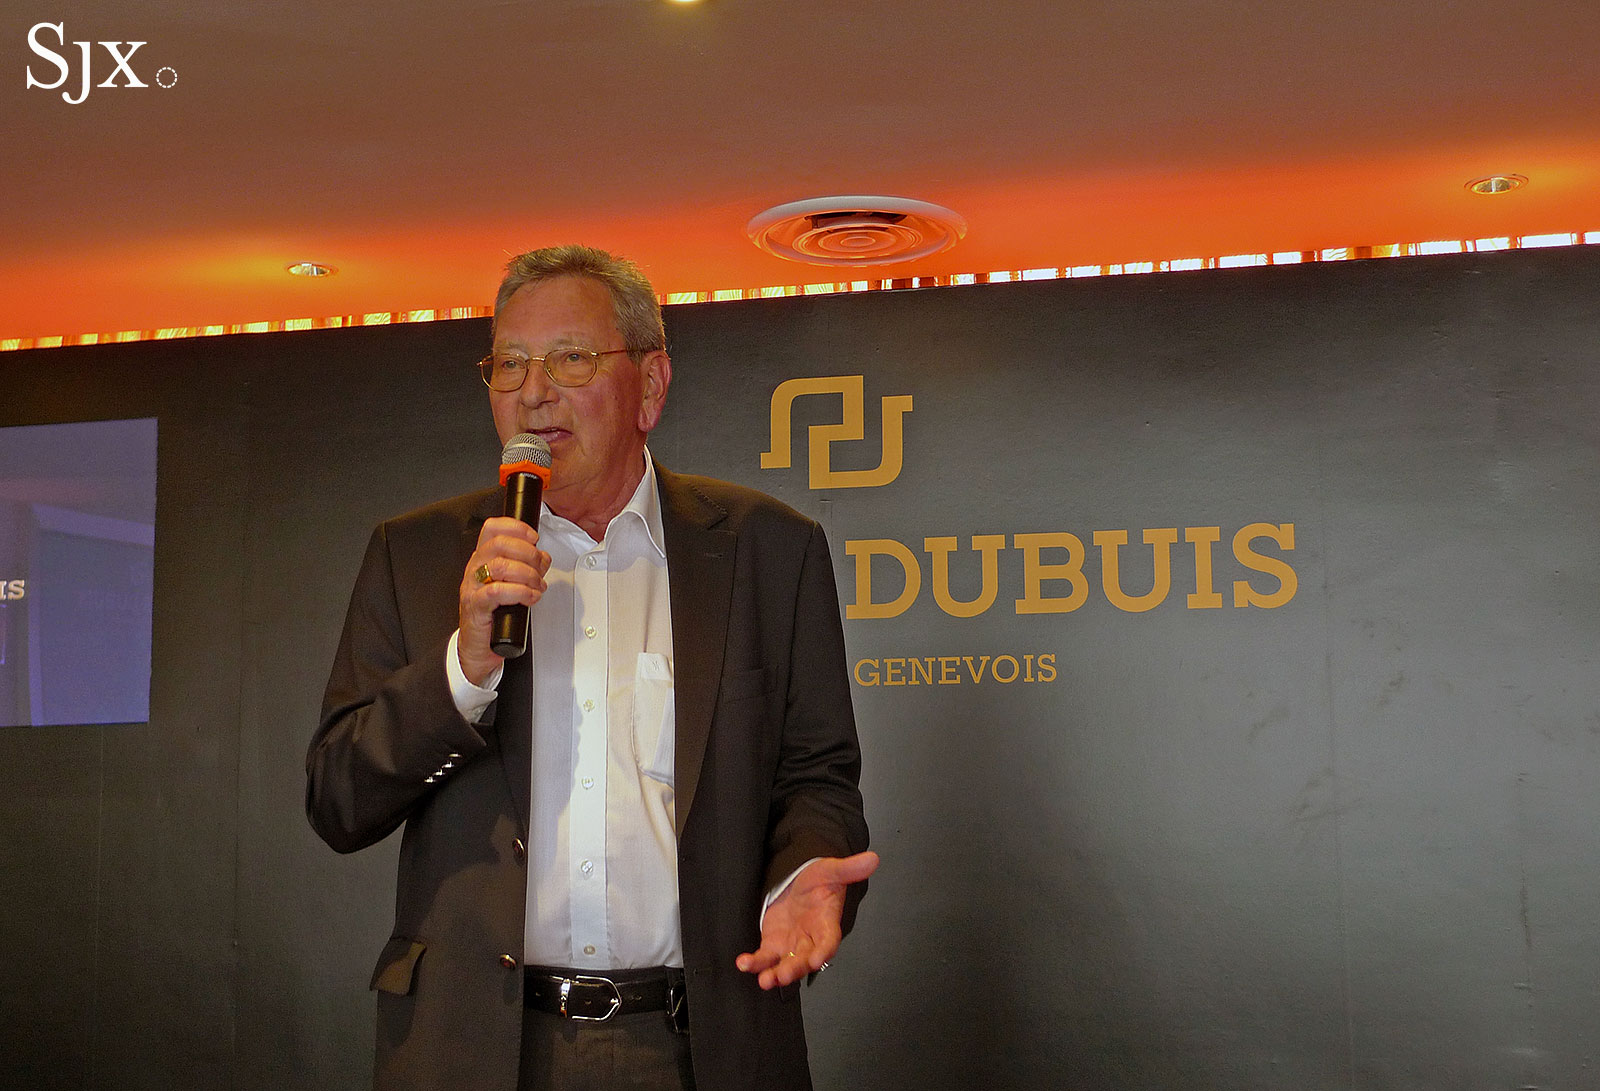 Mr Roger Dubuis